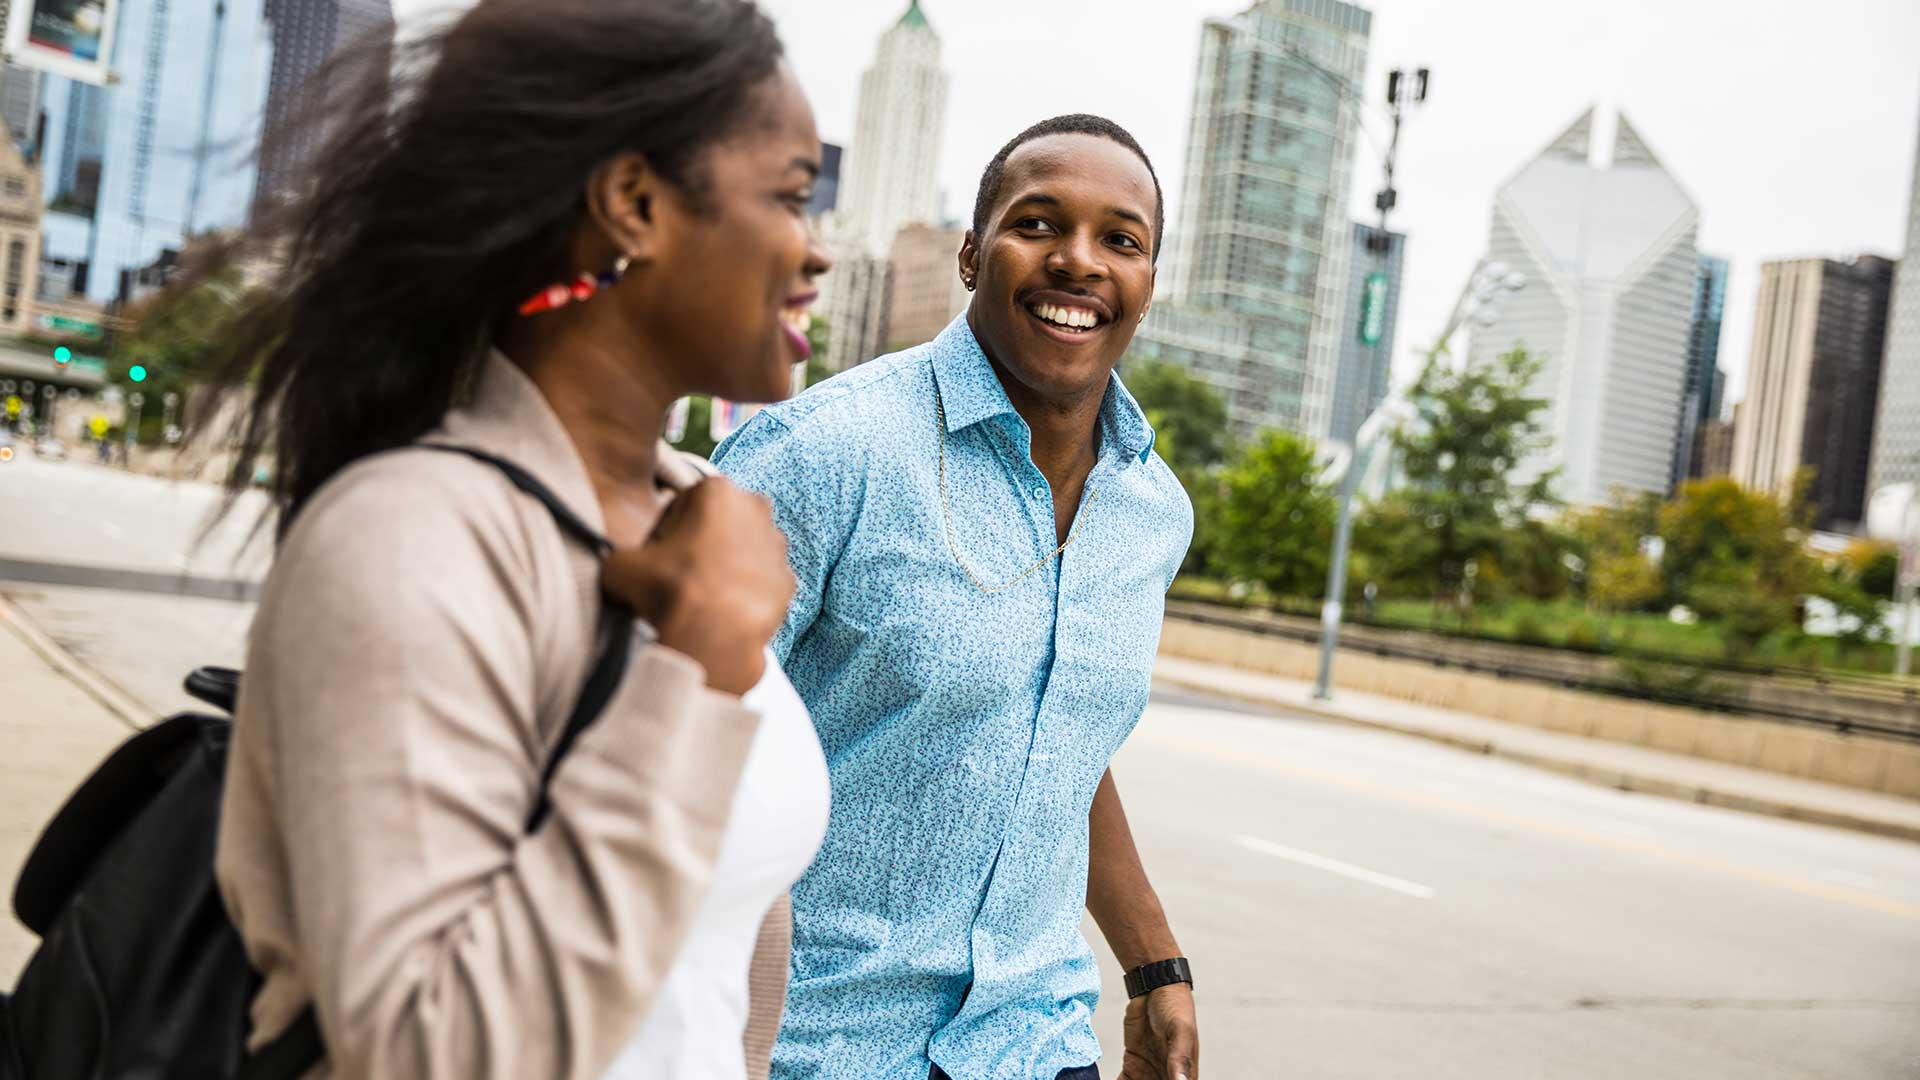 A couple walks down a street in the South Loop neighborhood of Chicago.